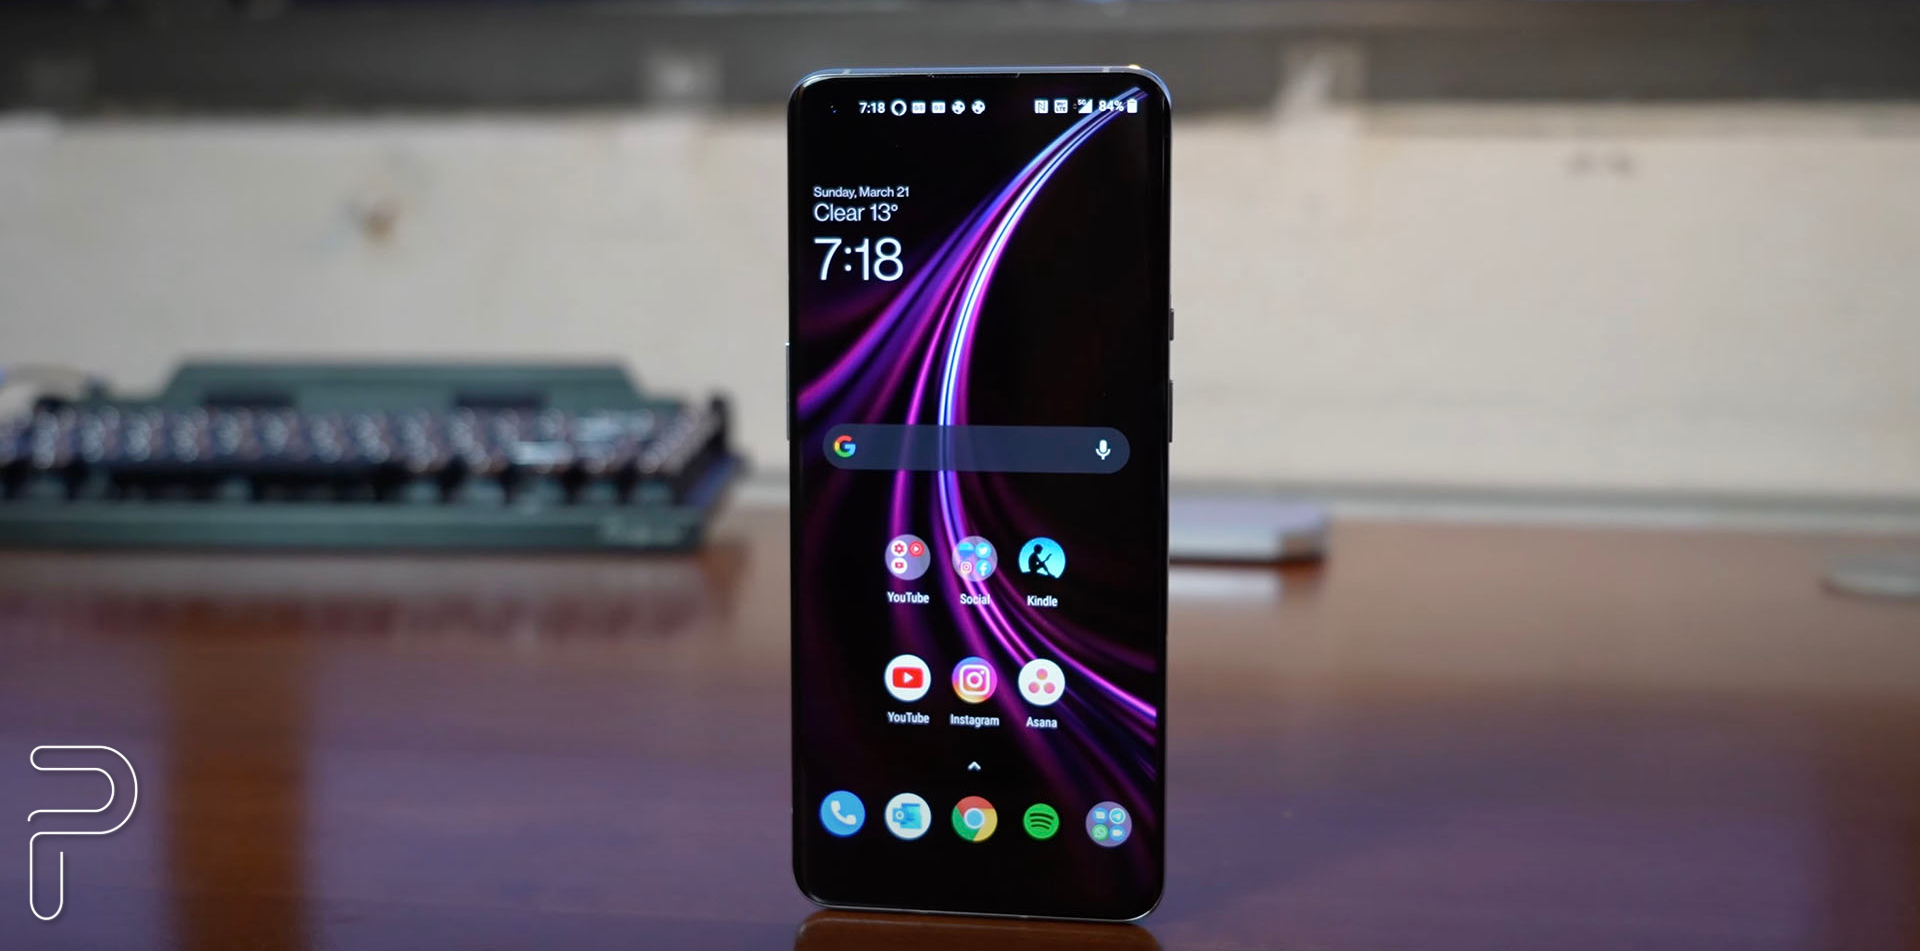 OnePlus 9 , OnePlus 9 Cam ,OnePlus 9 Camera test,OnePlus 9 Screen Repair, OnePlus 9 Camera, OnePlus 9 Unboxing, OnePlus 9 Hands-on